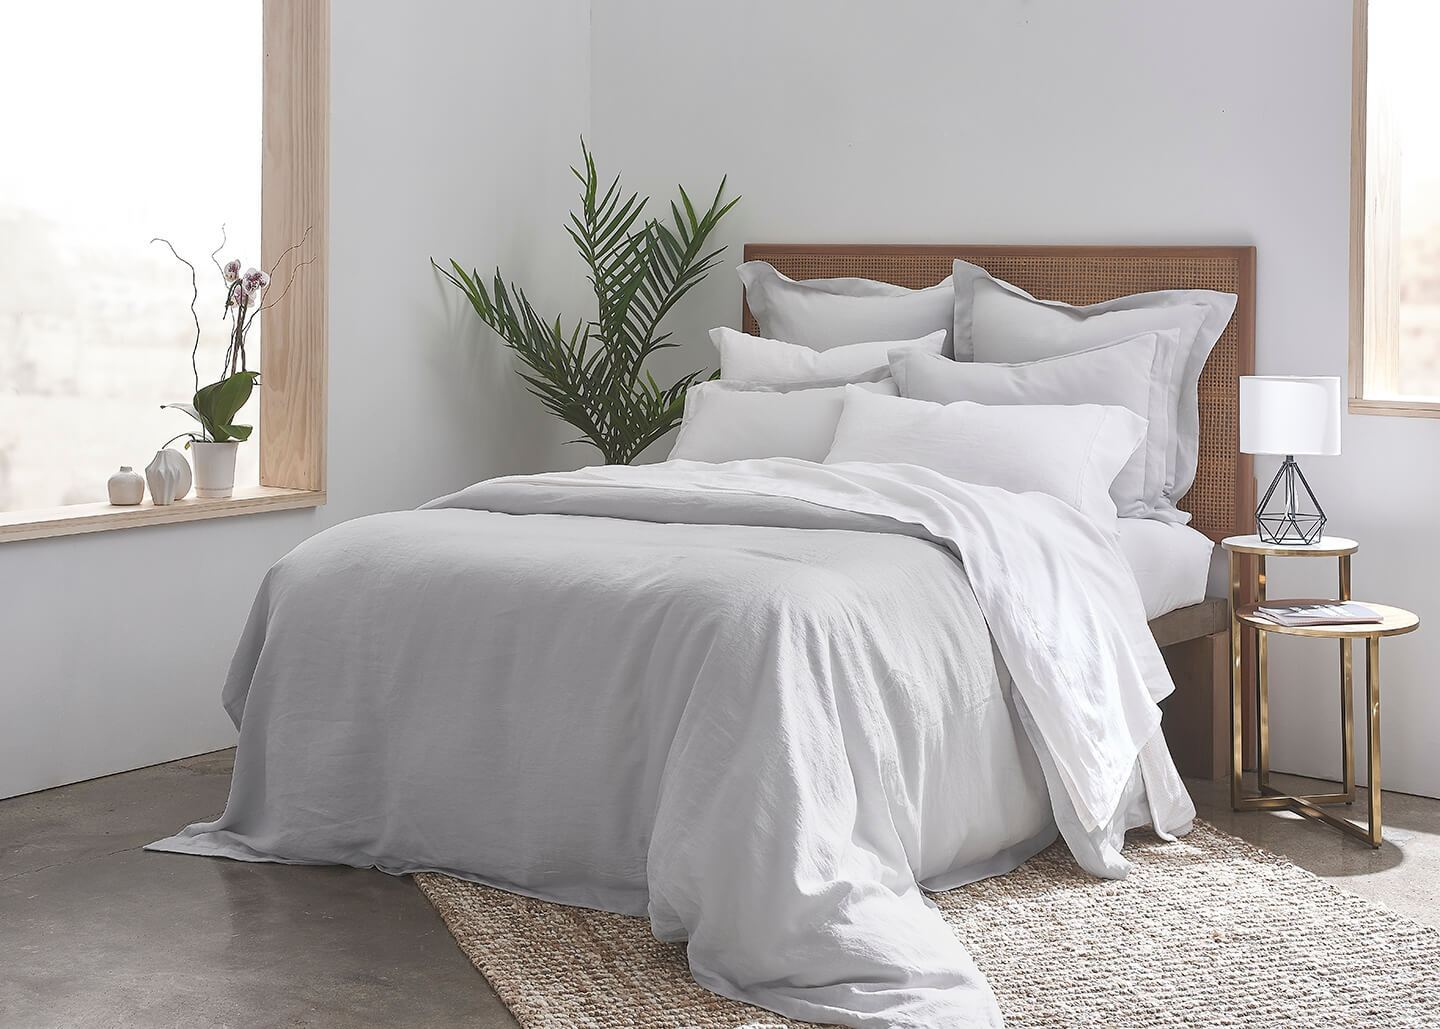 gray linen duvet cover on a luxury double bed with plush pillows in a minimalist bedroom